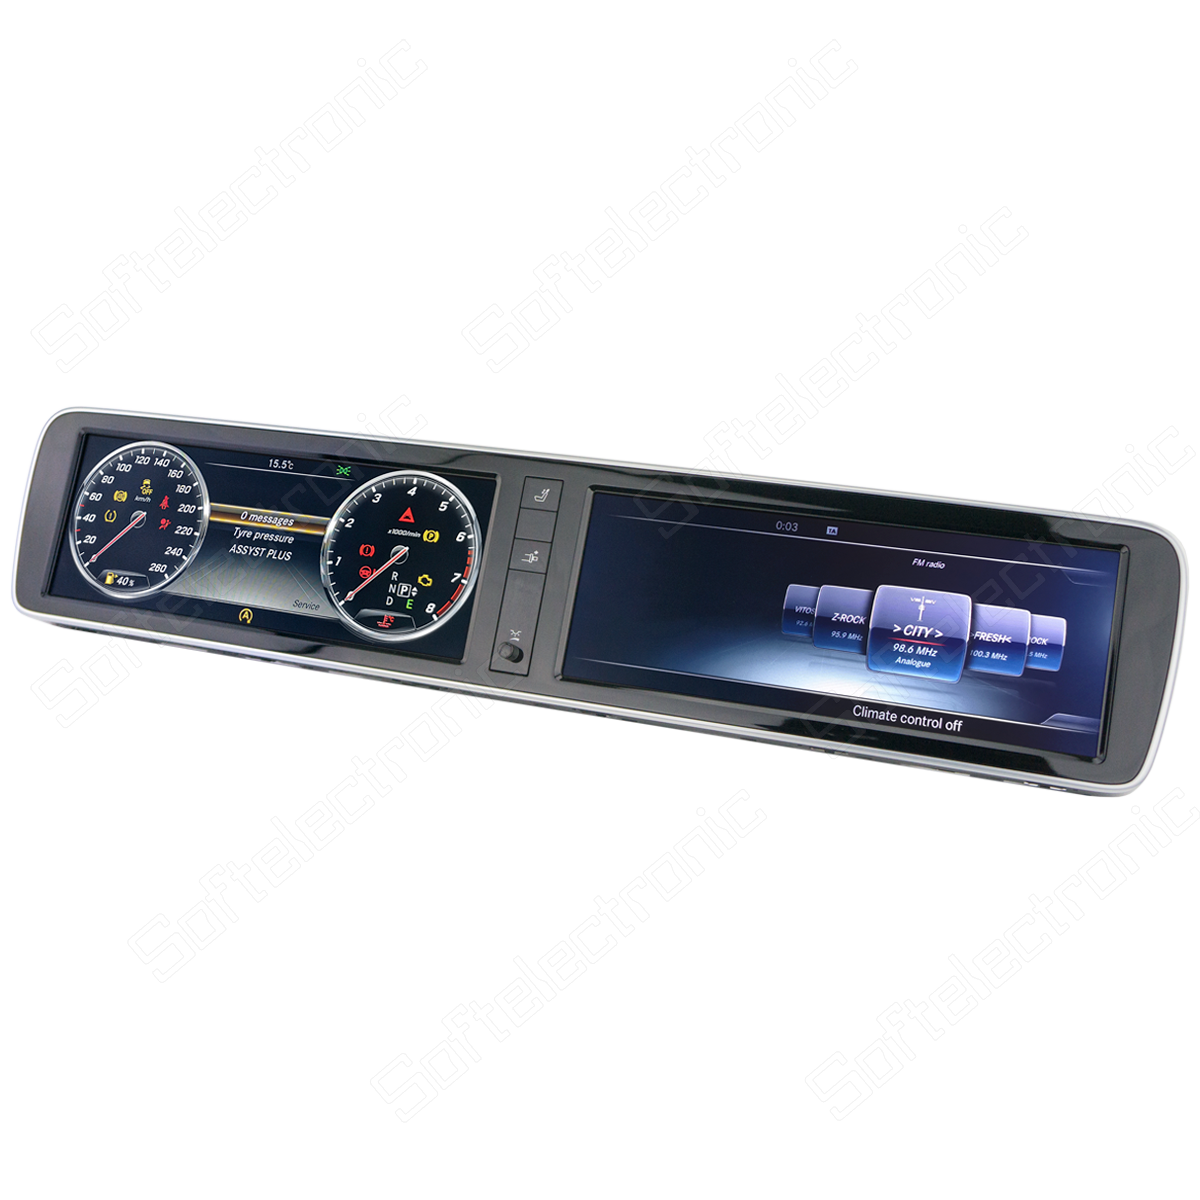 Repair of Instrument Cluster for Mercedes W222